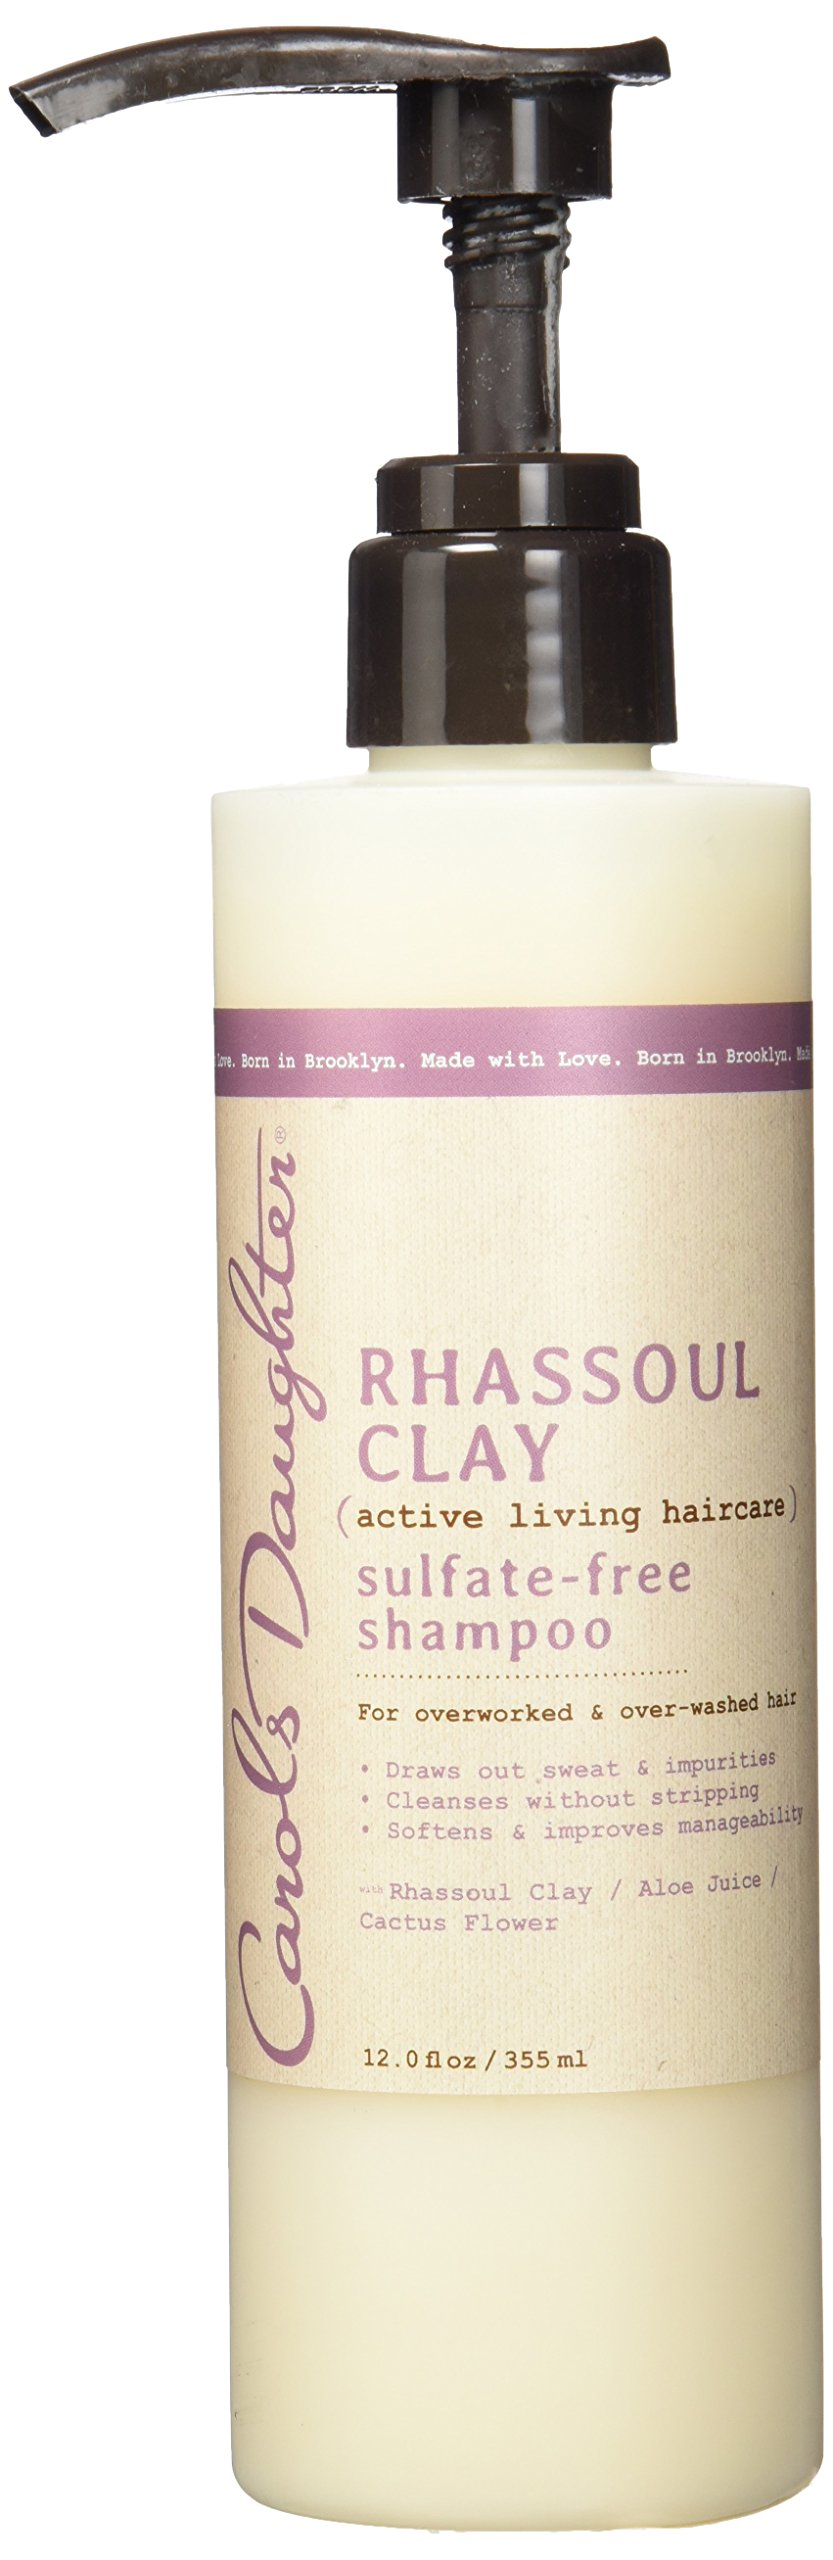 Carol's Daughter Rhassoul Clay Sulfate-Free Shampoo, For Overworked & Over-Washed Hair, 12 fl oz (Packaging May Vary)